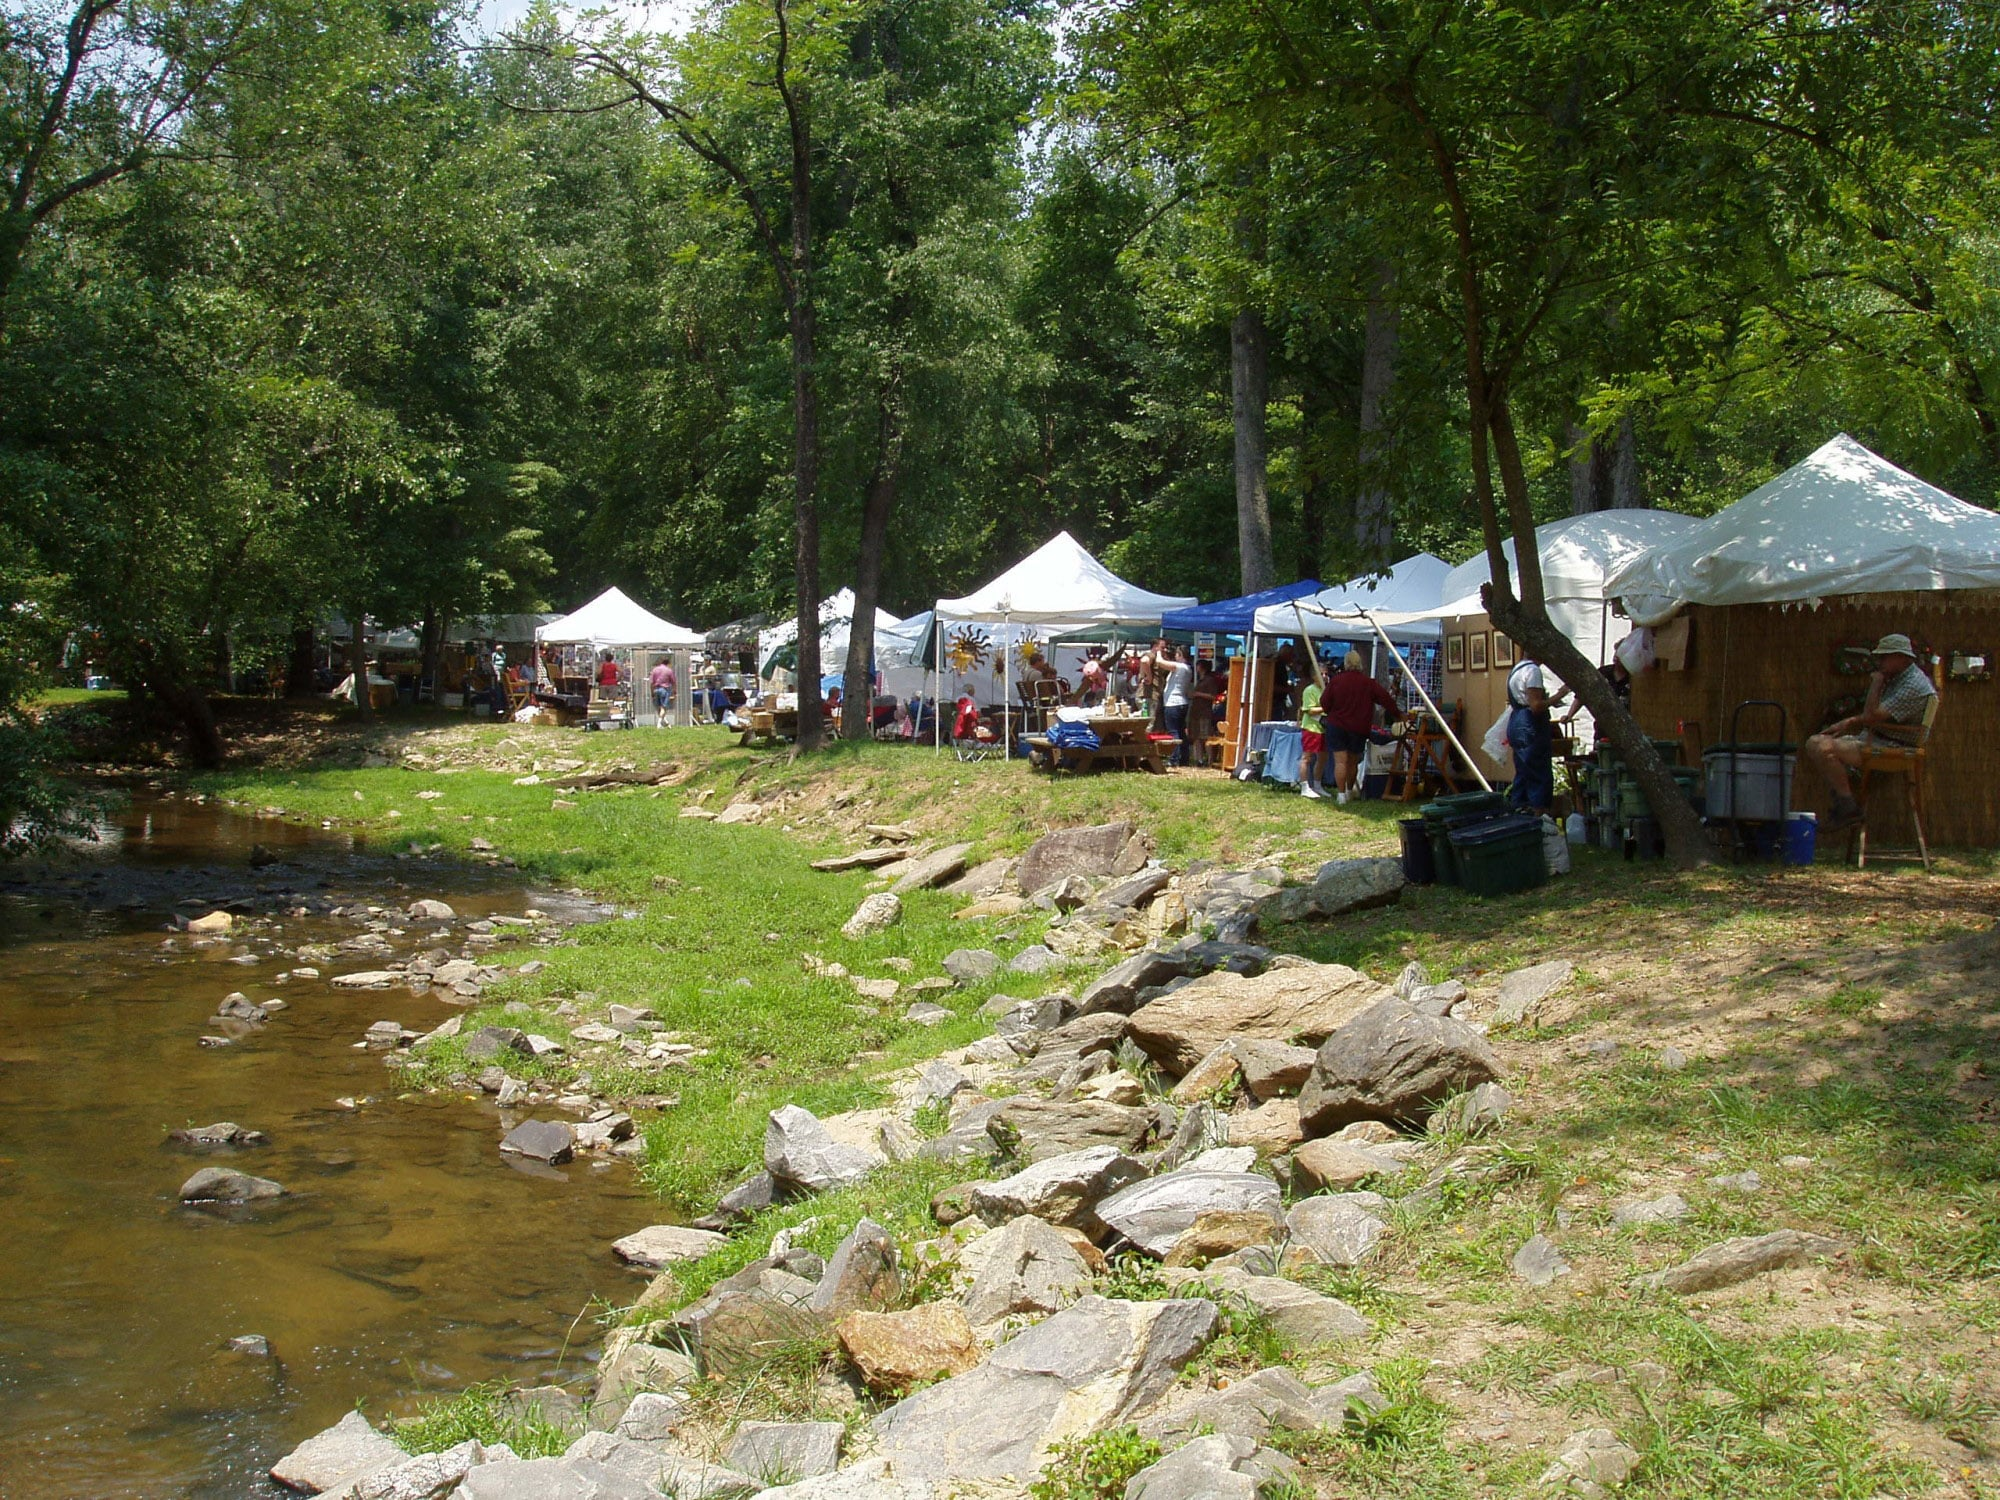 Butternut Creek Festival in Blairsville, Georgia